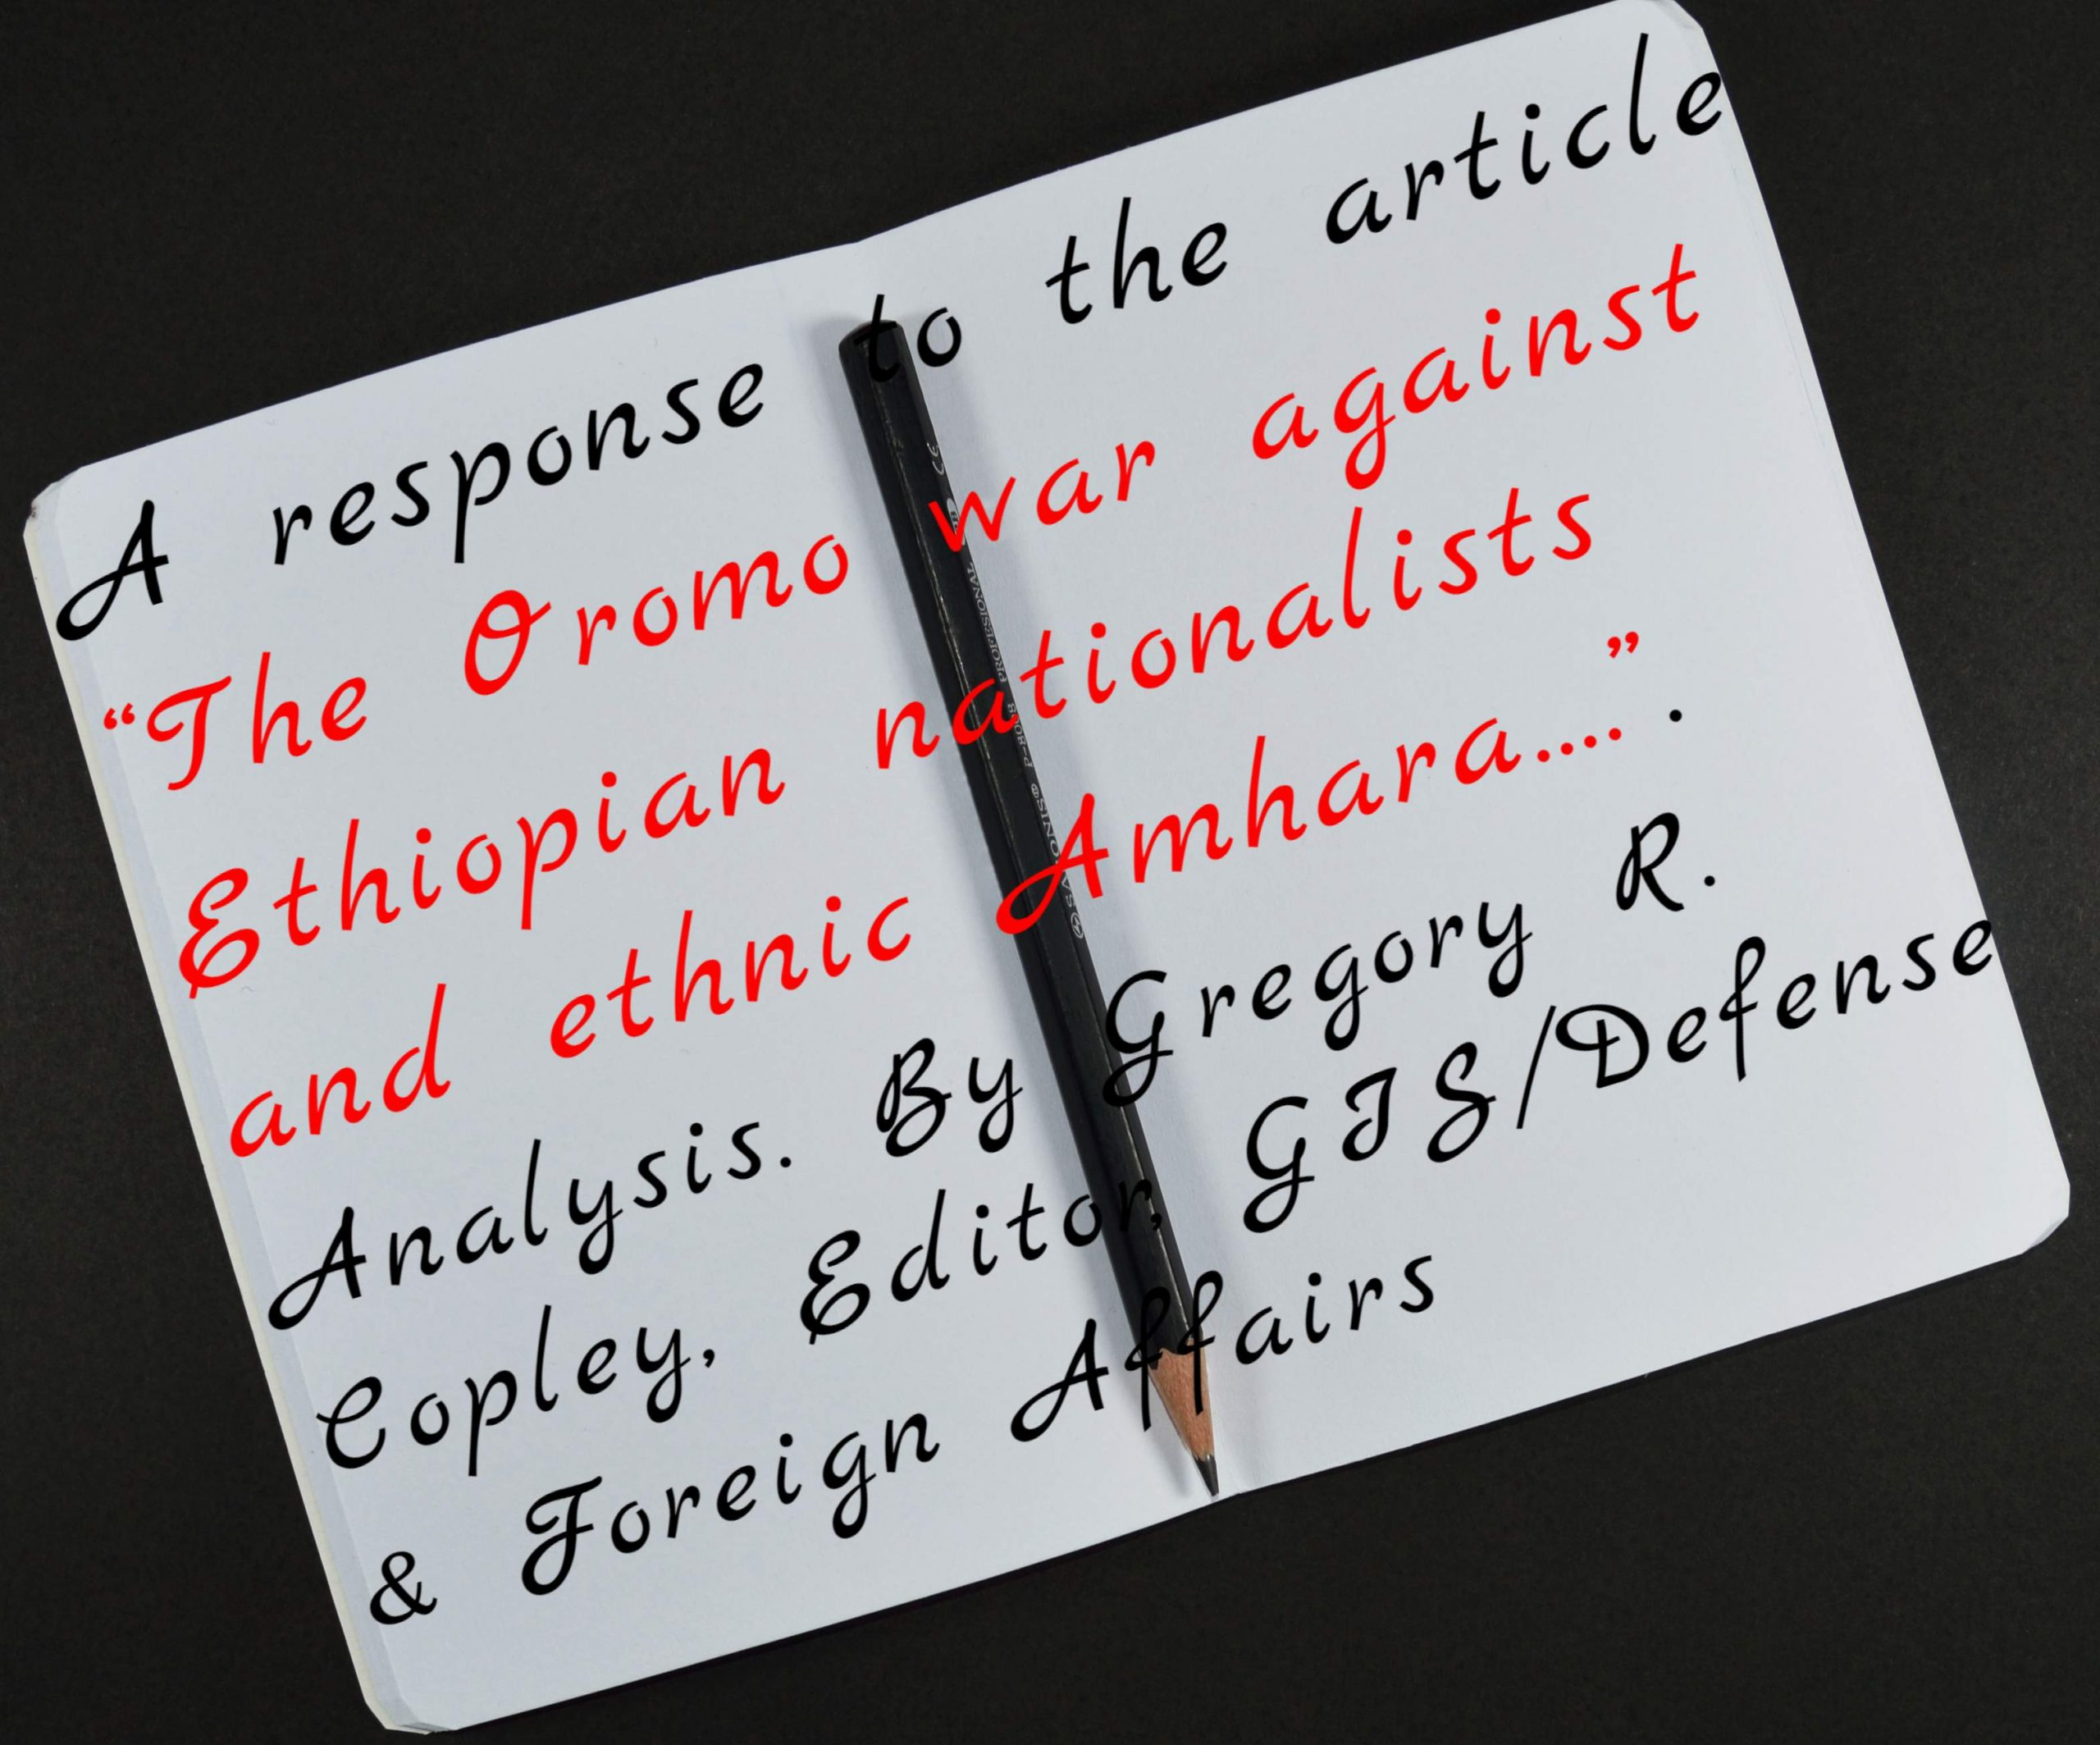 "A response to the article ""The Oromo war against Ethiopian nationalists and ethnic Amhara…."".  Analysis. By Gregory R. Copley, Editor, GIS/Defense & Foreign Affairs"